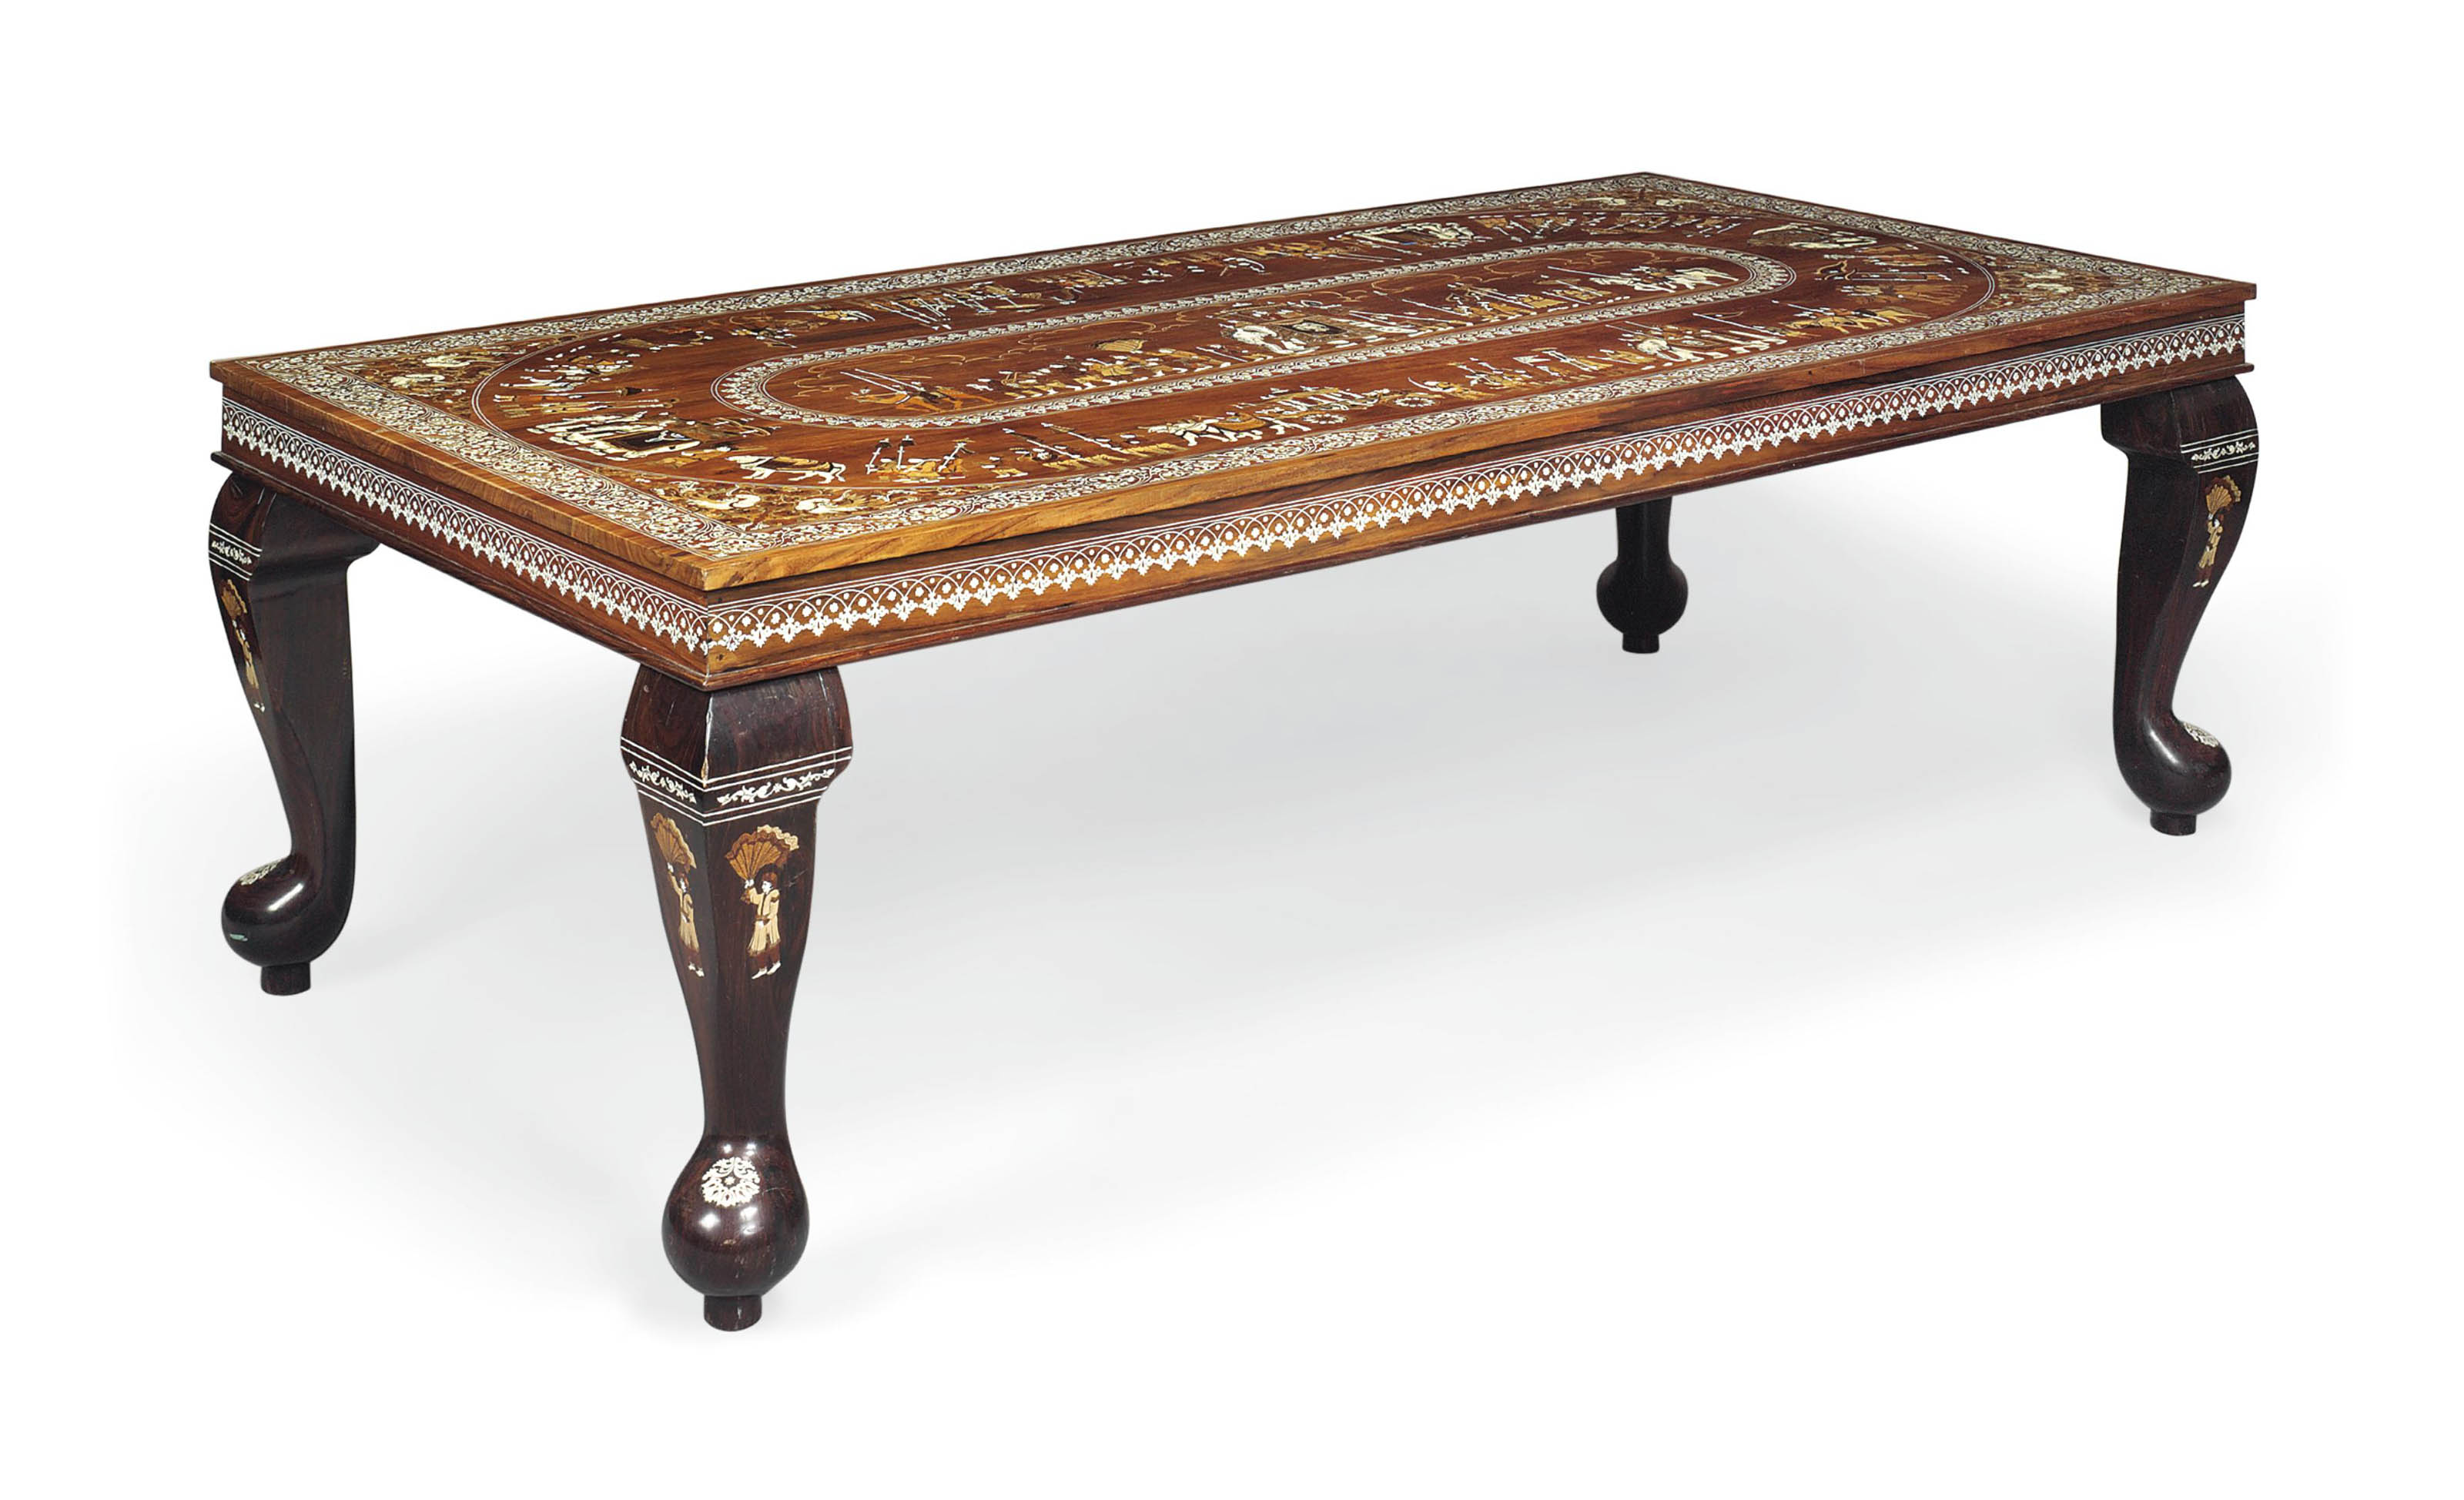 Enjoyable An Indian Rosewood Marquetry And Bone Inlaid Centre Table Dailytribune Chair Design For Home Dailytribuneorg